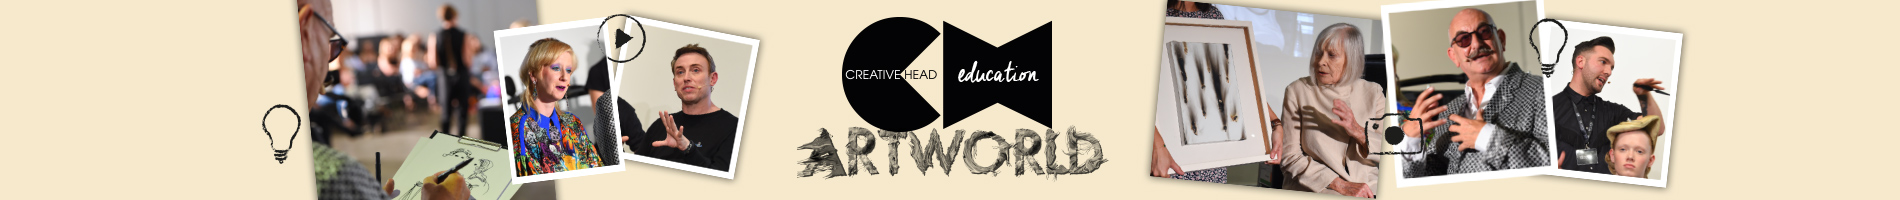 CHeducation_ARTWORLDbanner